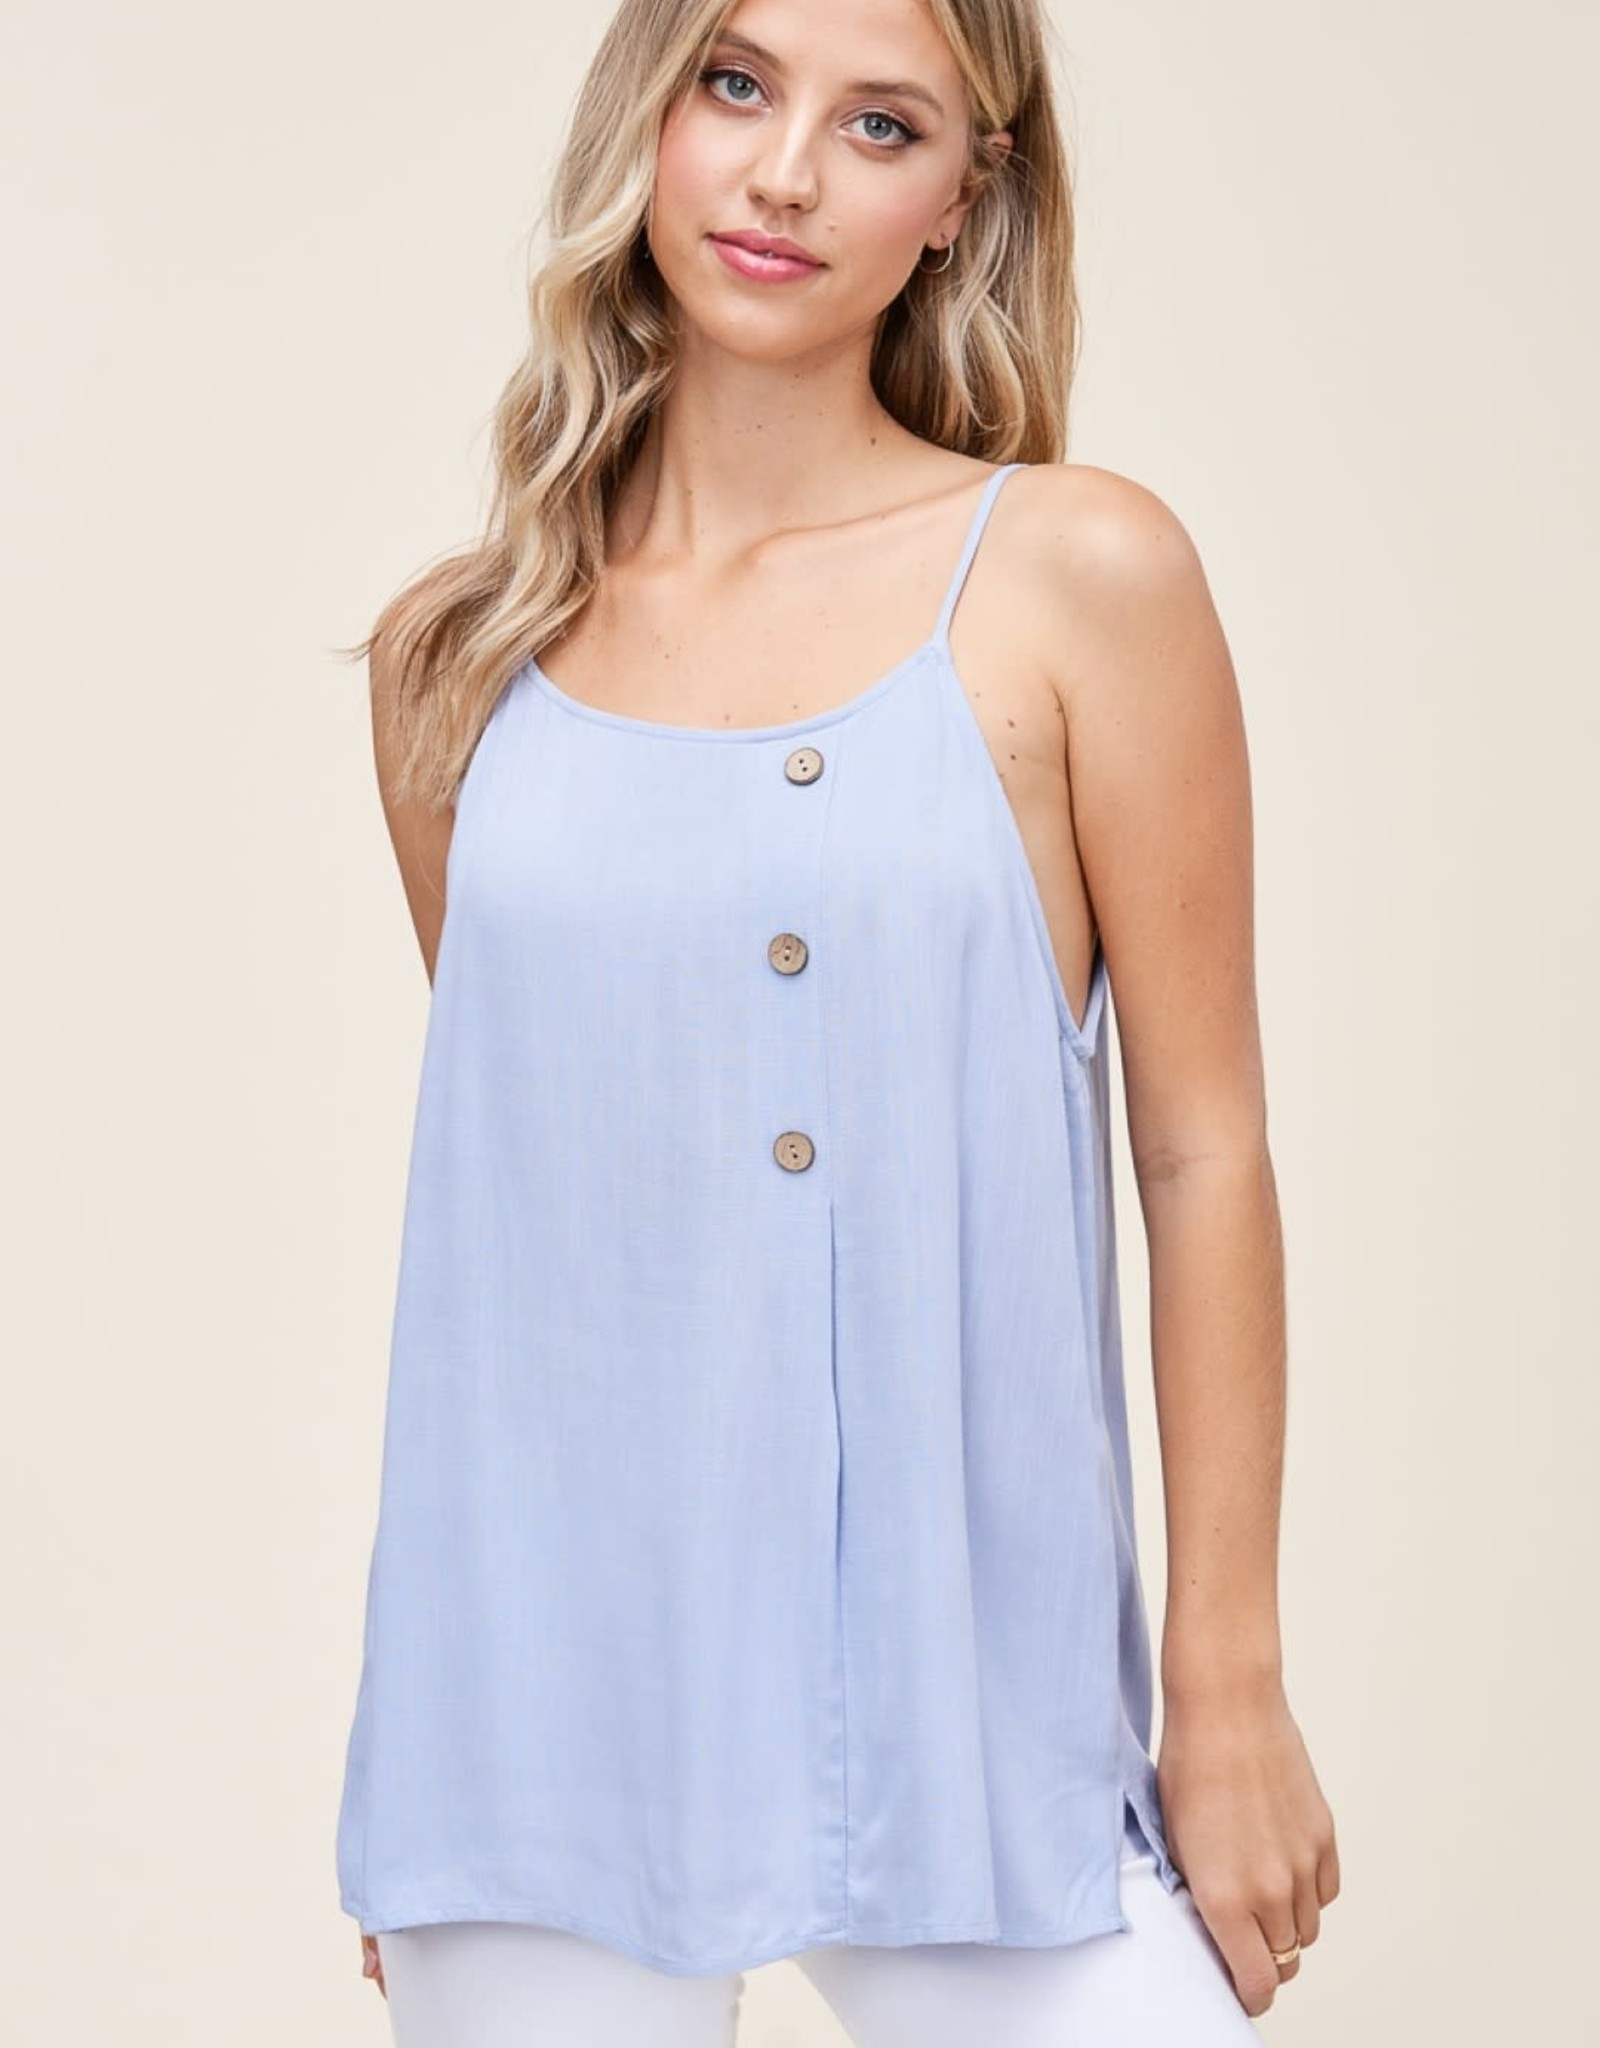 Cami with Button Detail